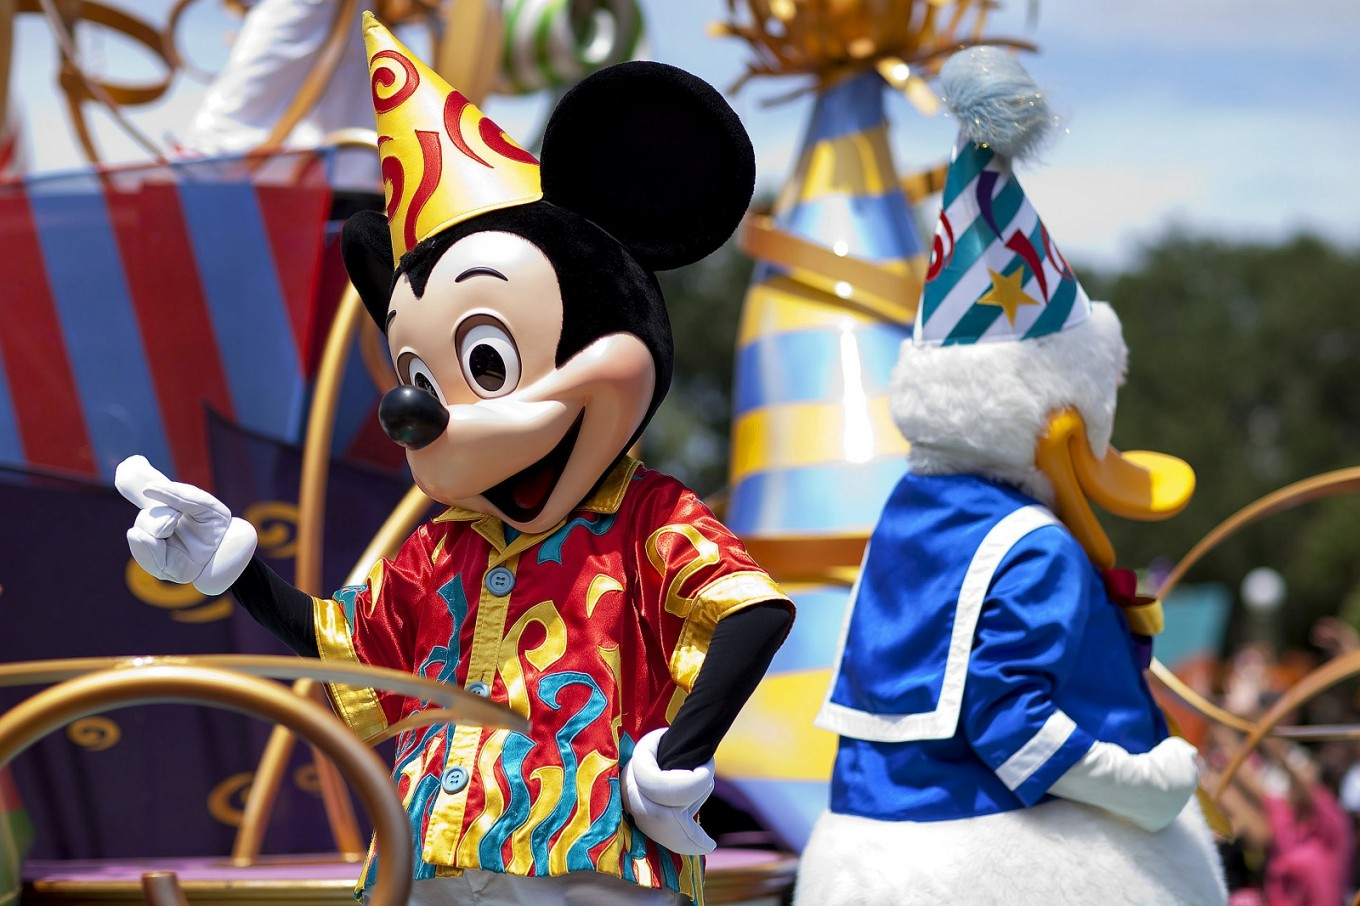 Disney joins cast of companies abandoning plastic straws